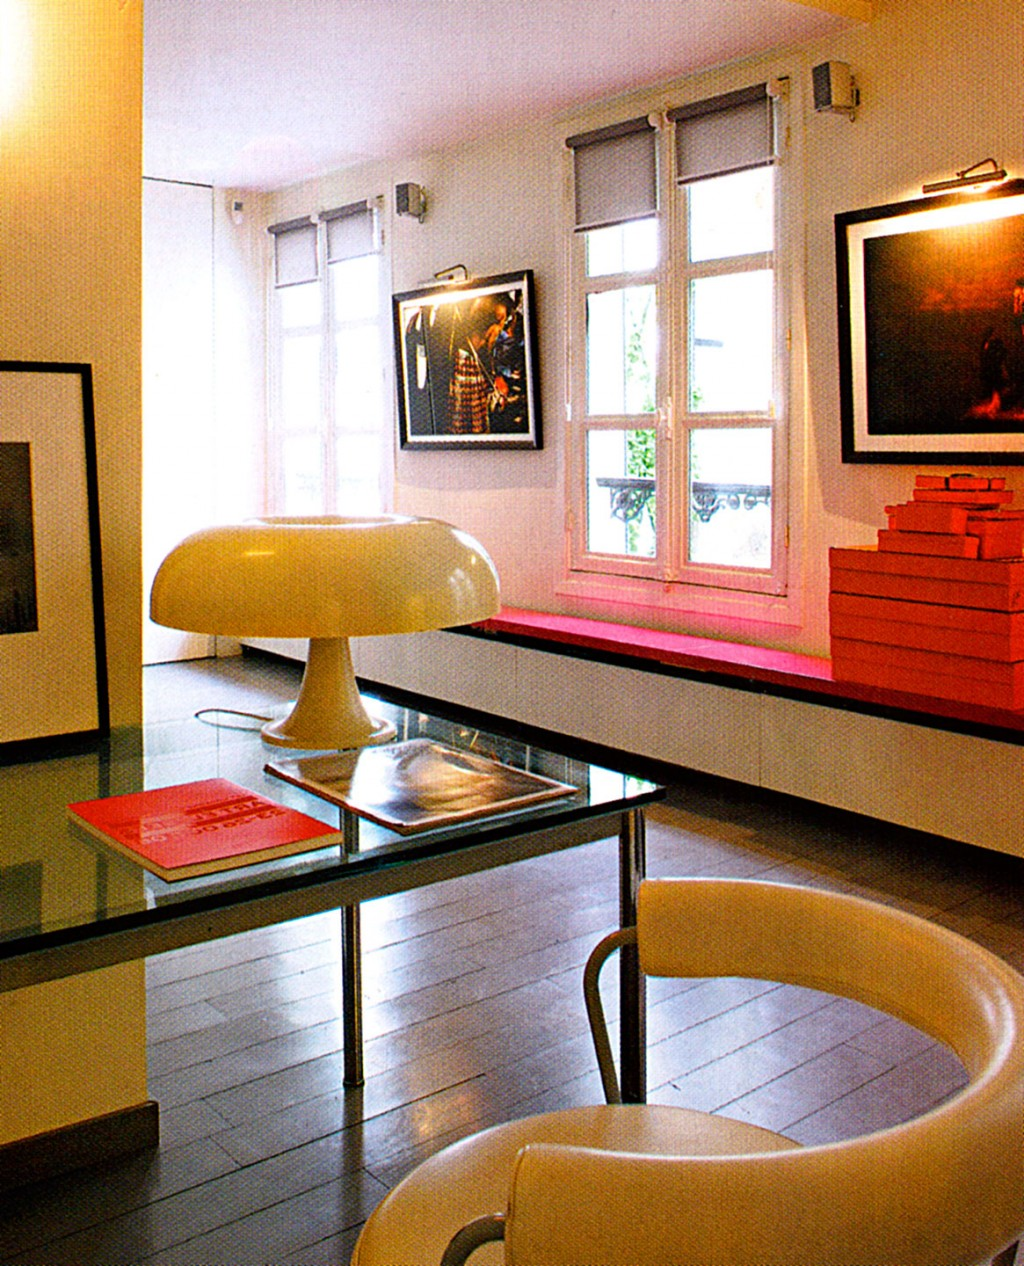 COLOMBE STEVENS Loft Paris 10